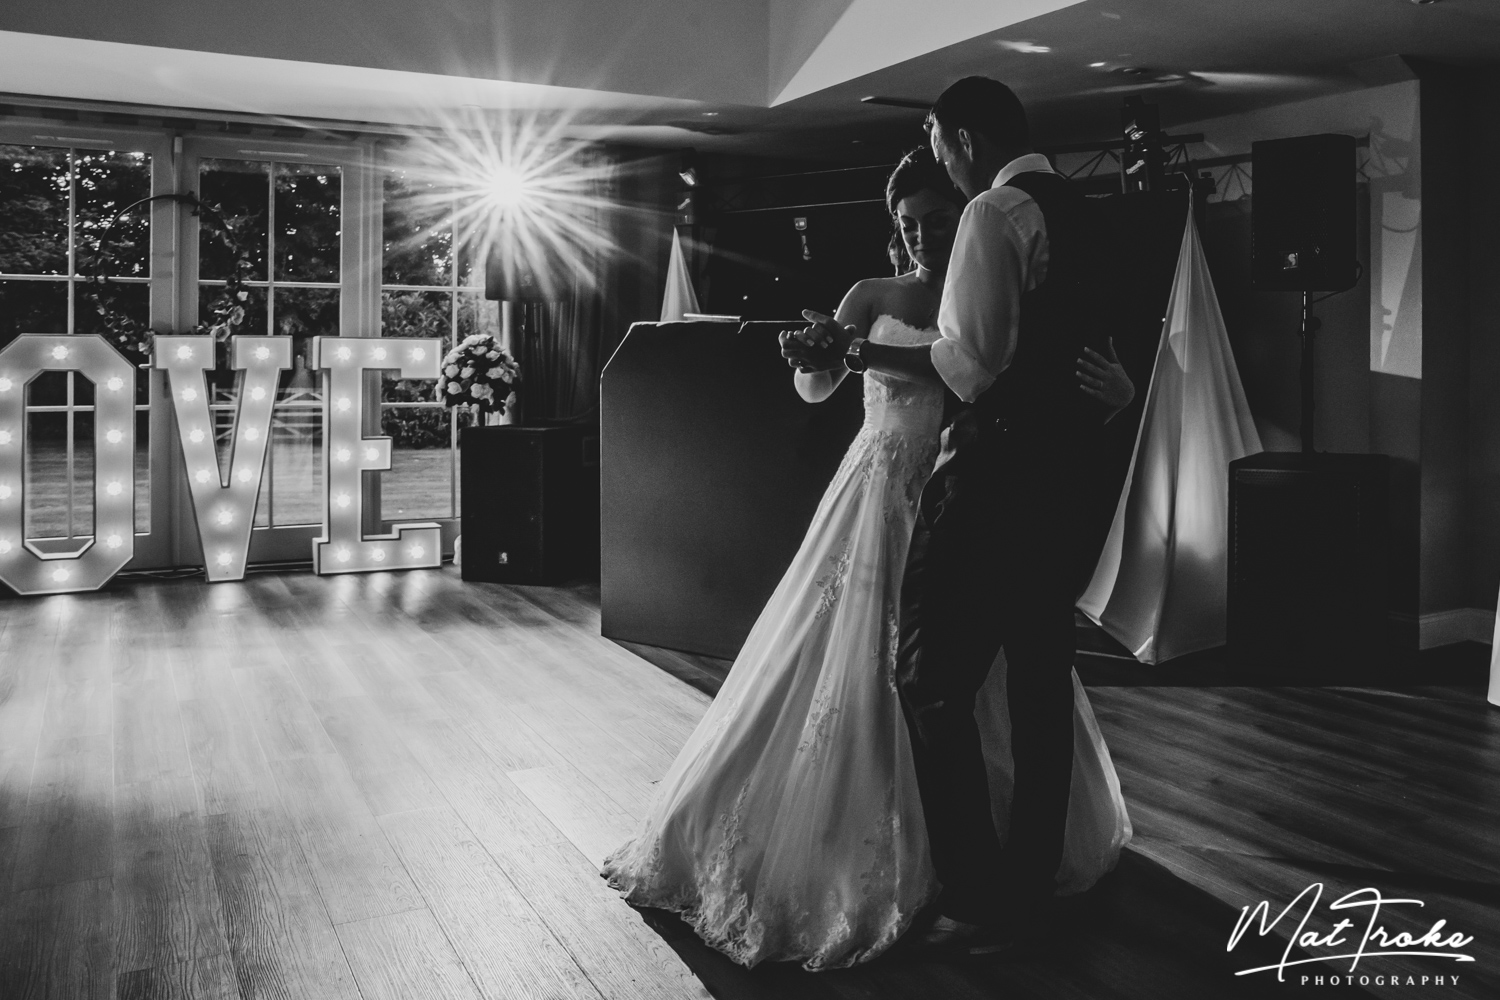 Derbyshire-kelham-manor-country-wedding-photography-first-dance-nottinghamshire-photographer-derby-notts